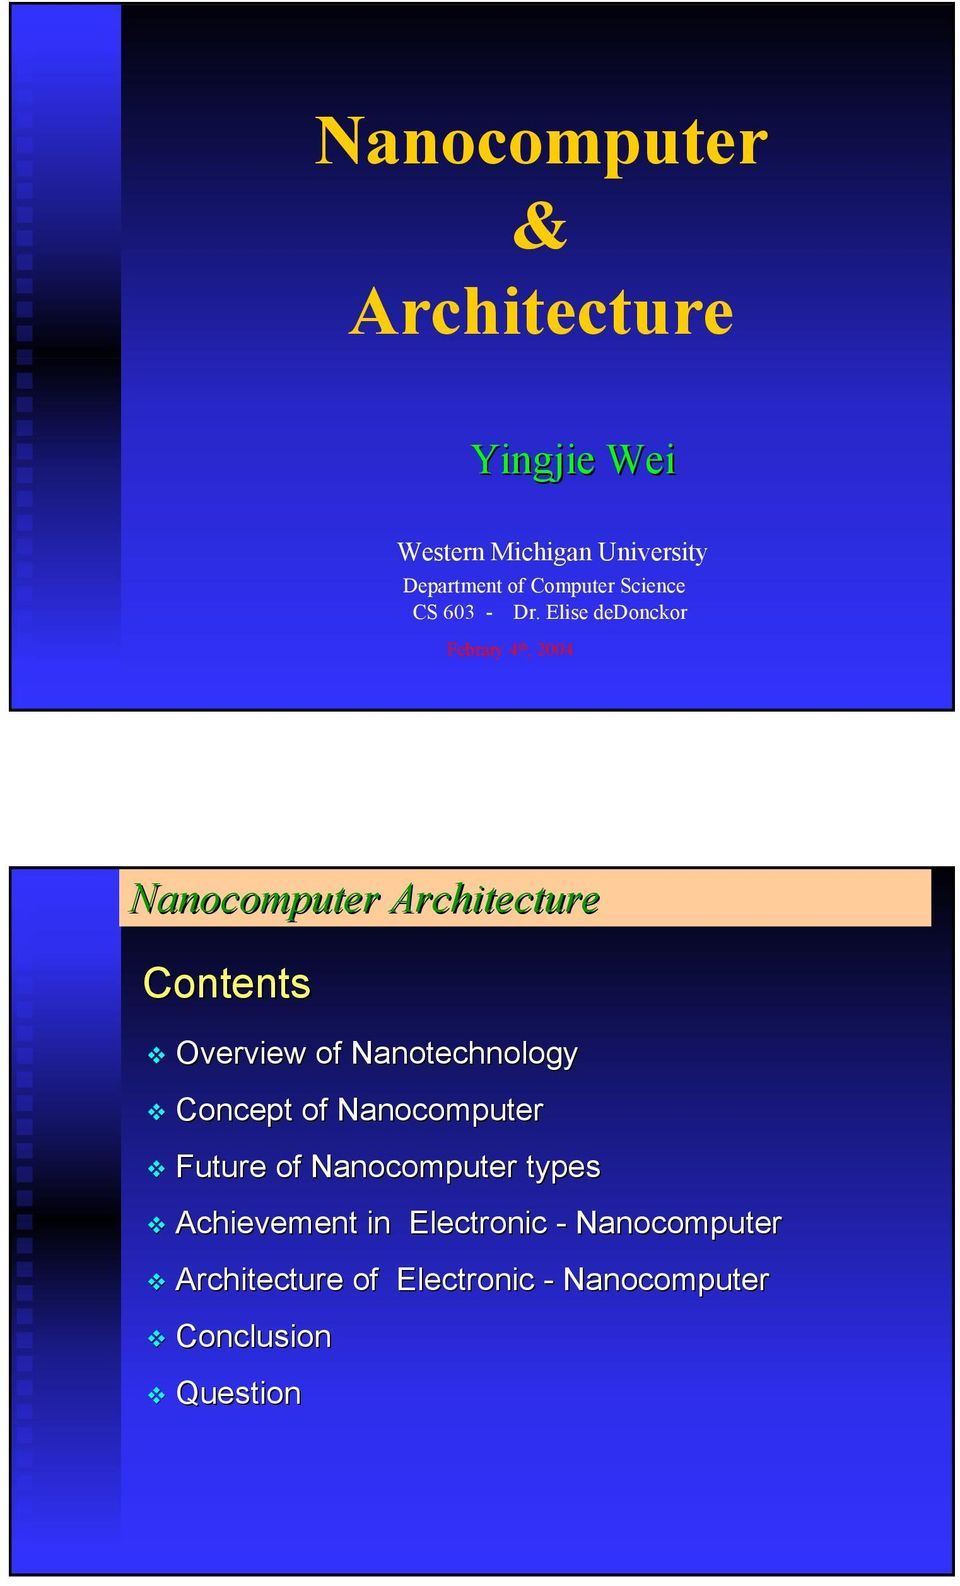 Elise dedonckor Febrary 4 th, 2004 Nanocomputer Architecture Contents Overview of